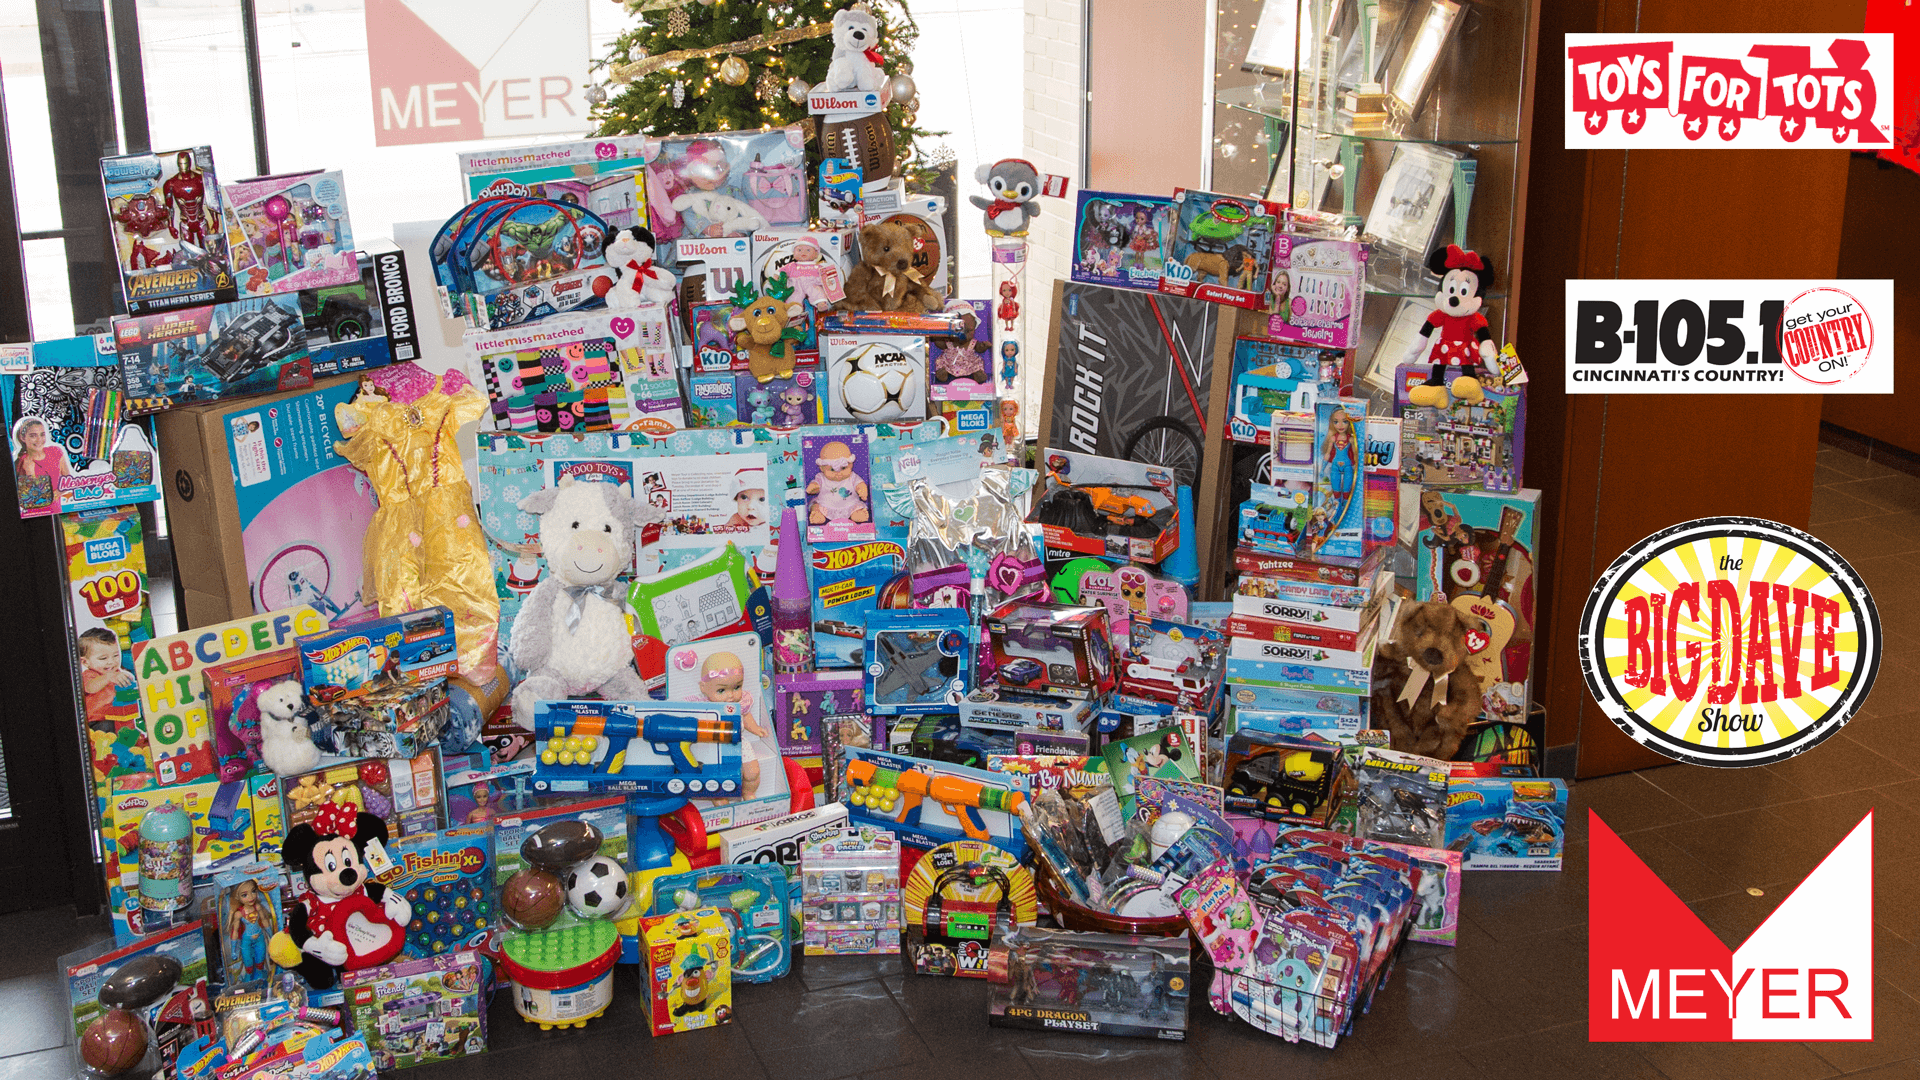 b105-toys-for-tots-meyer-tool-2018